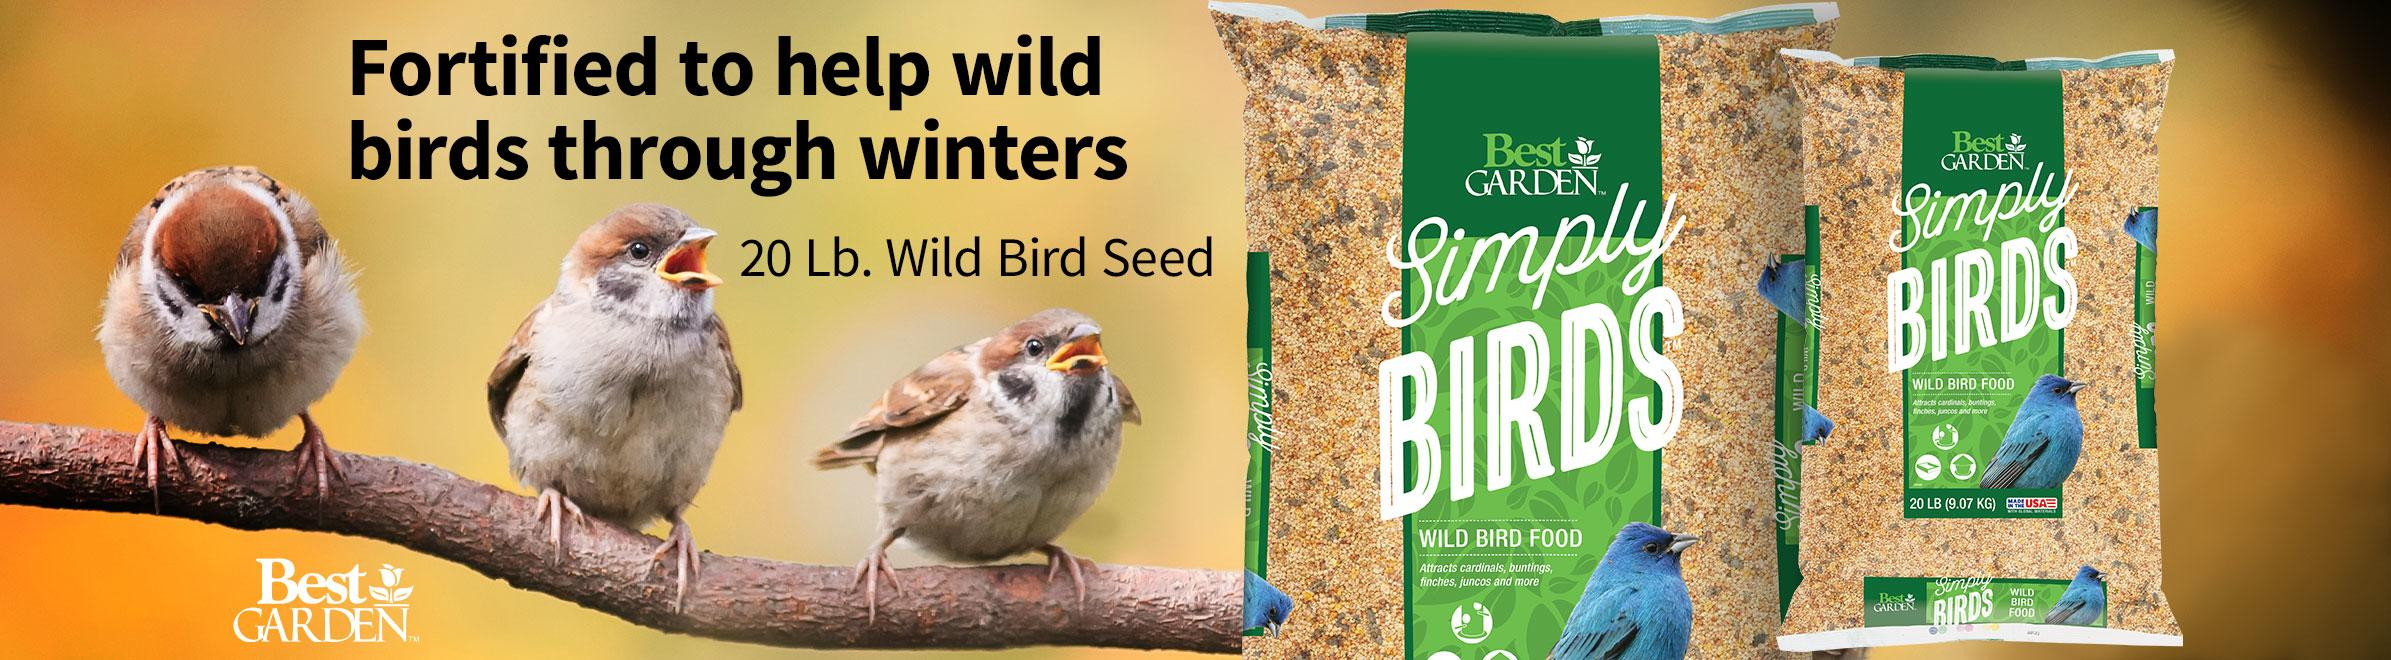 Best garden Wild Bird Food